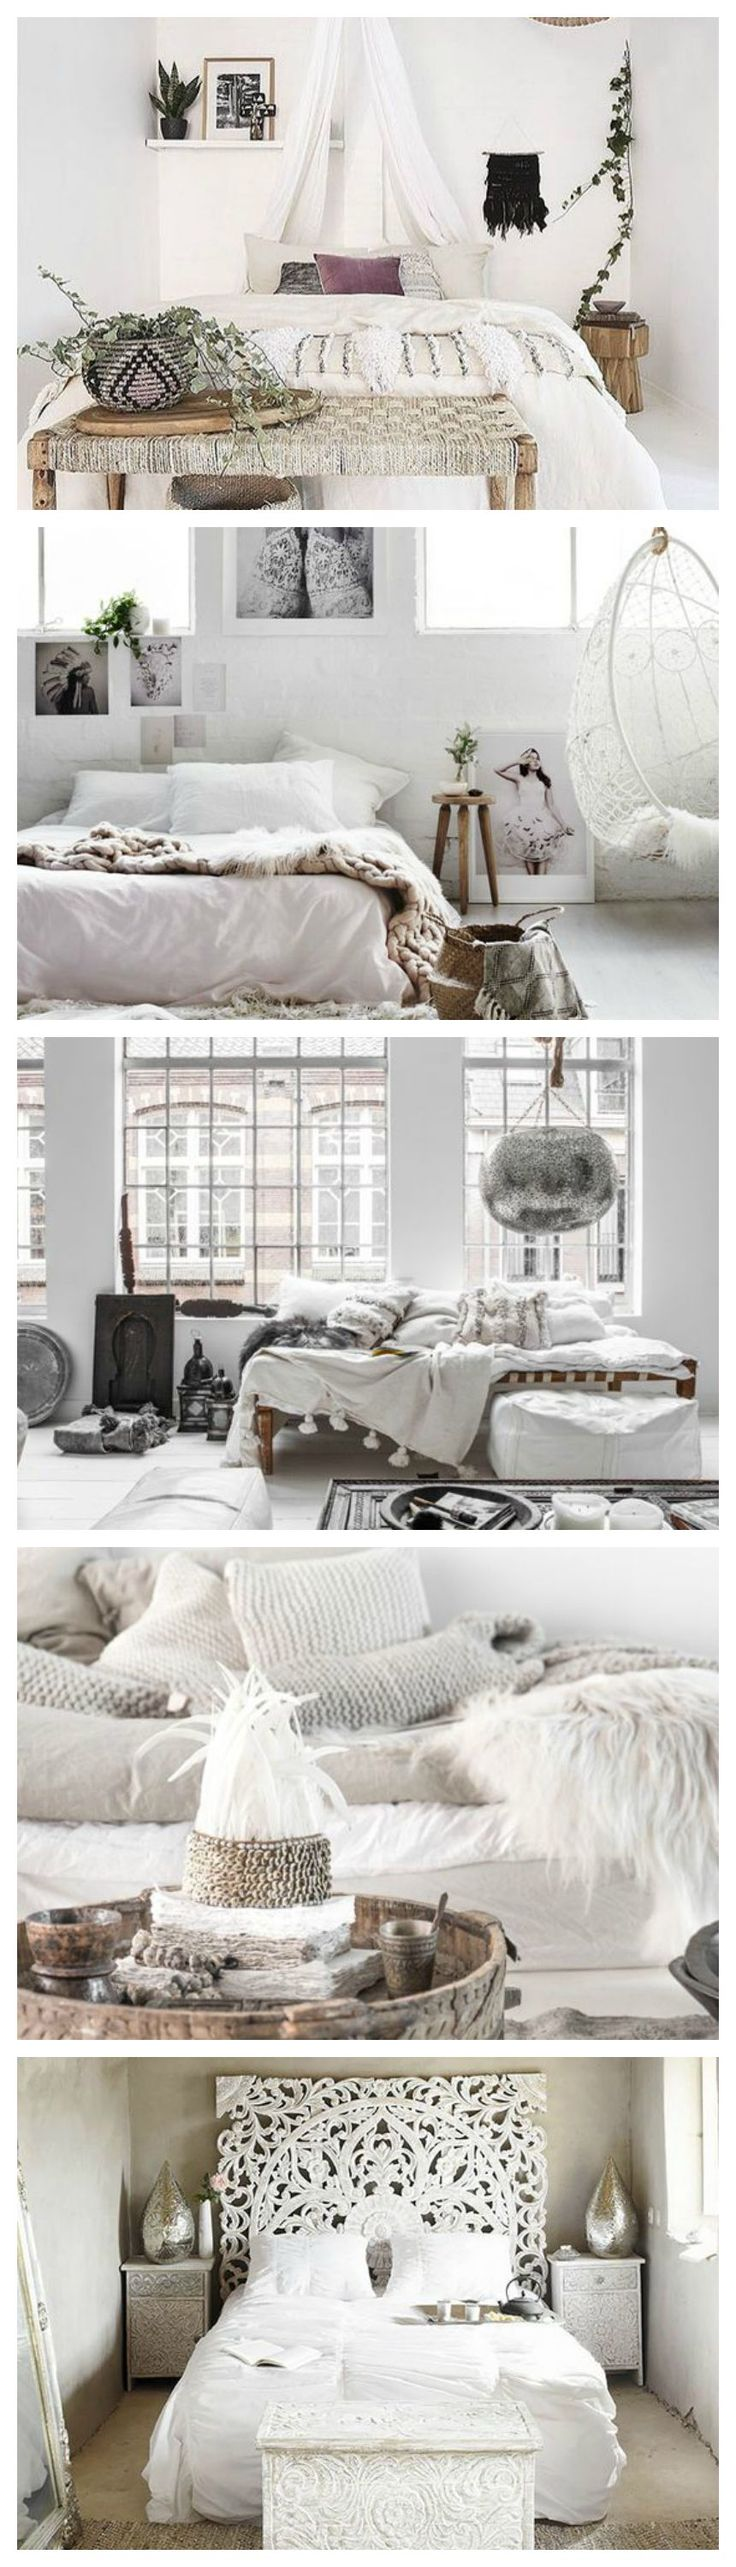 Best 25+ Boho decor ideas on Pinterest | Bohemian decor, Boho and ...